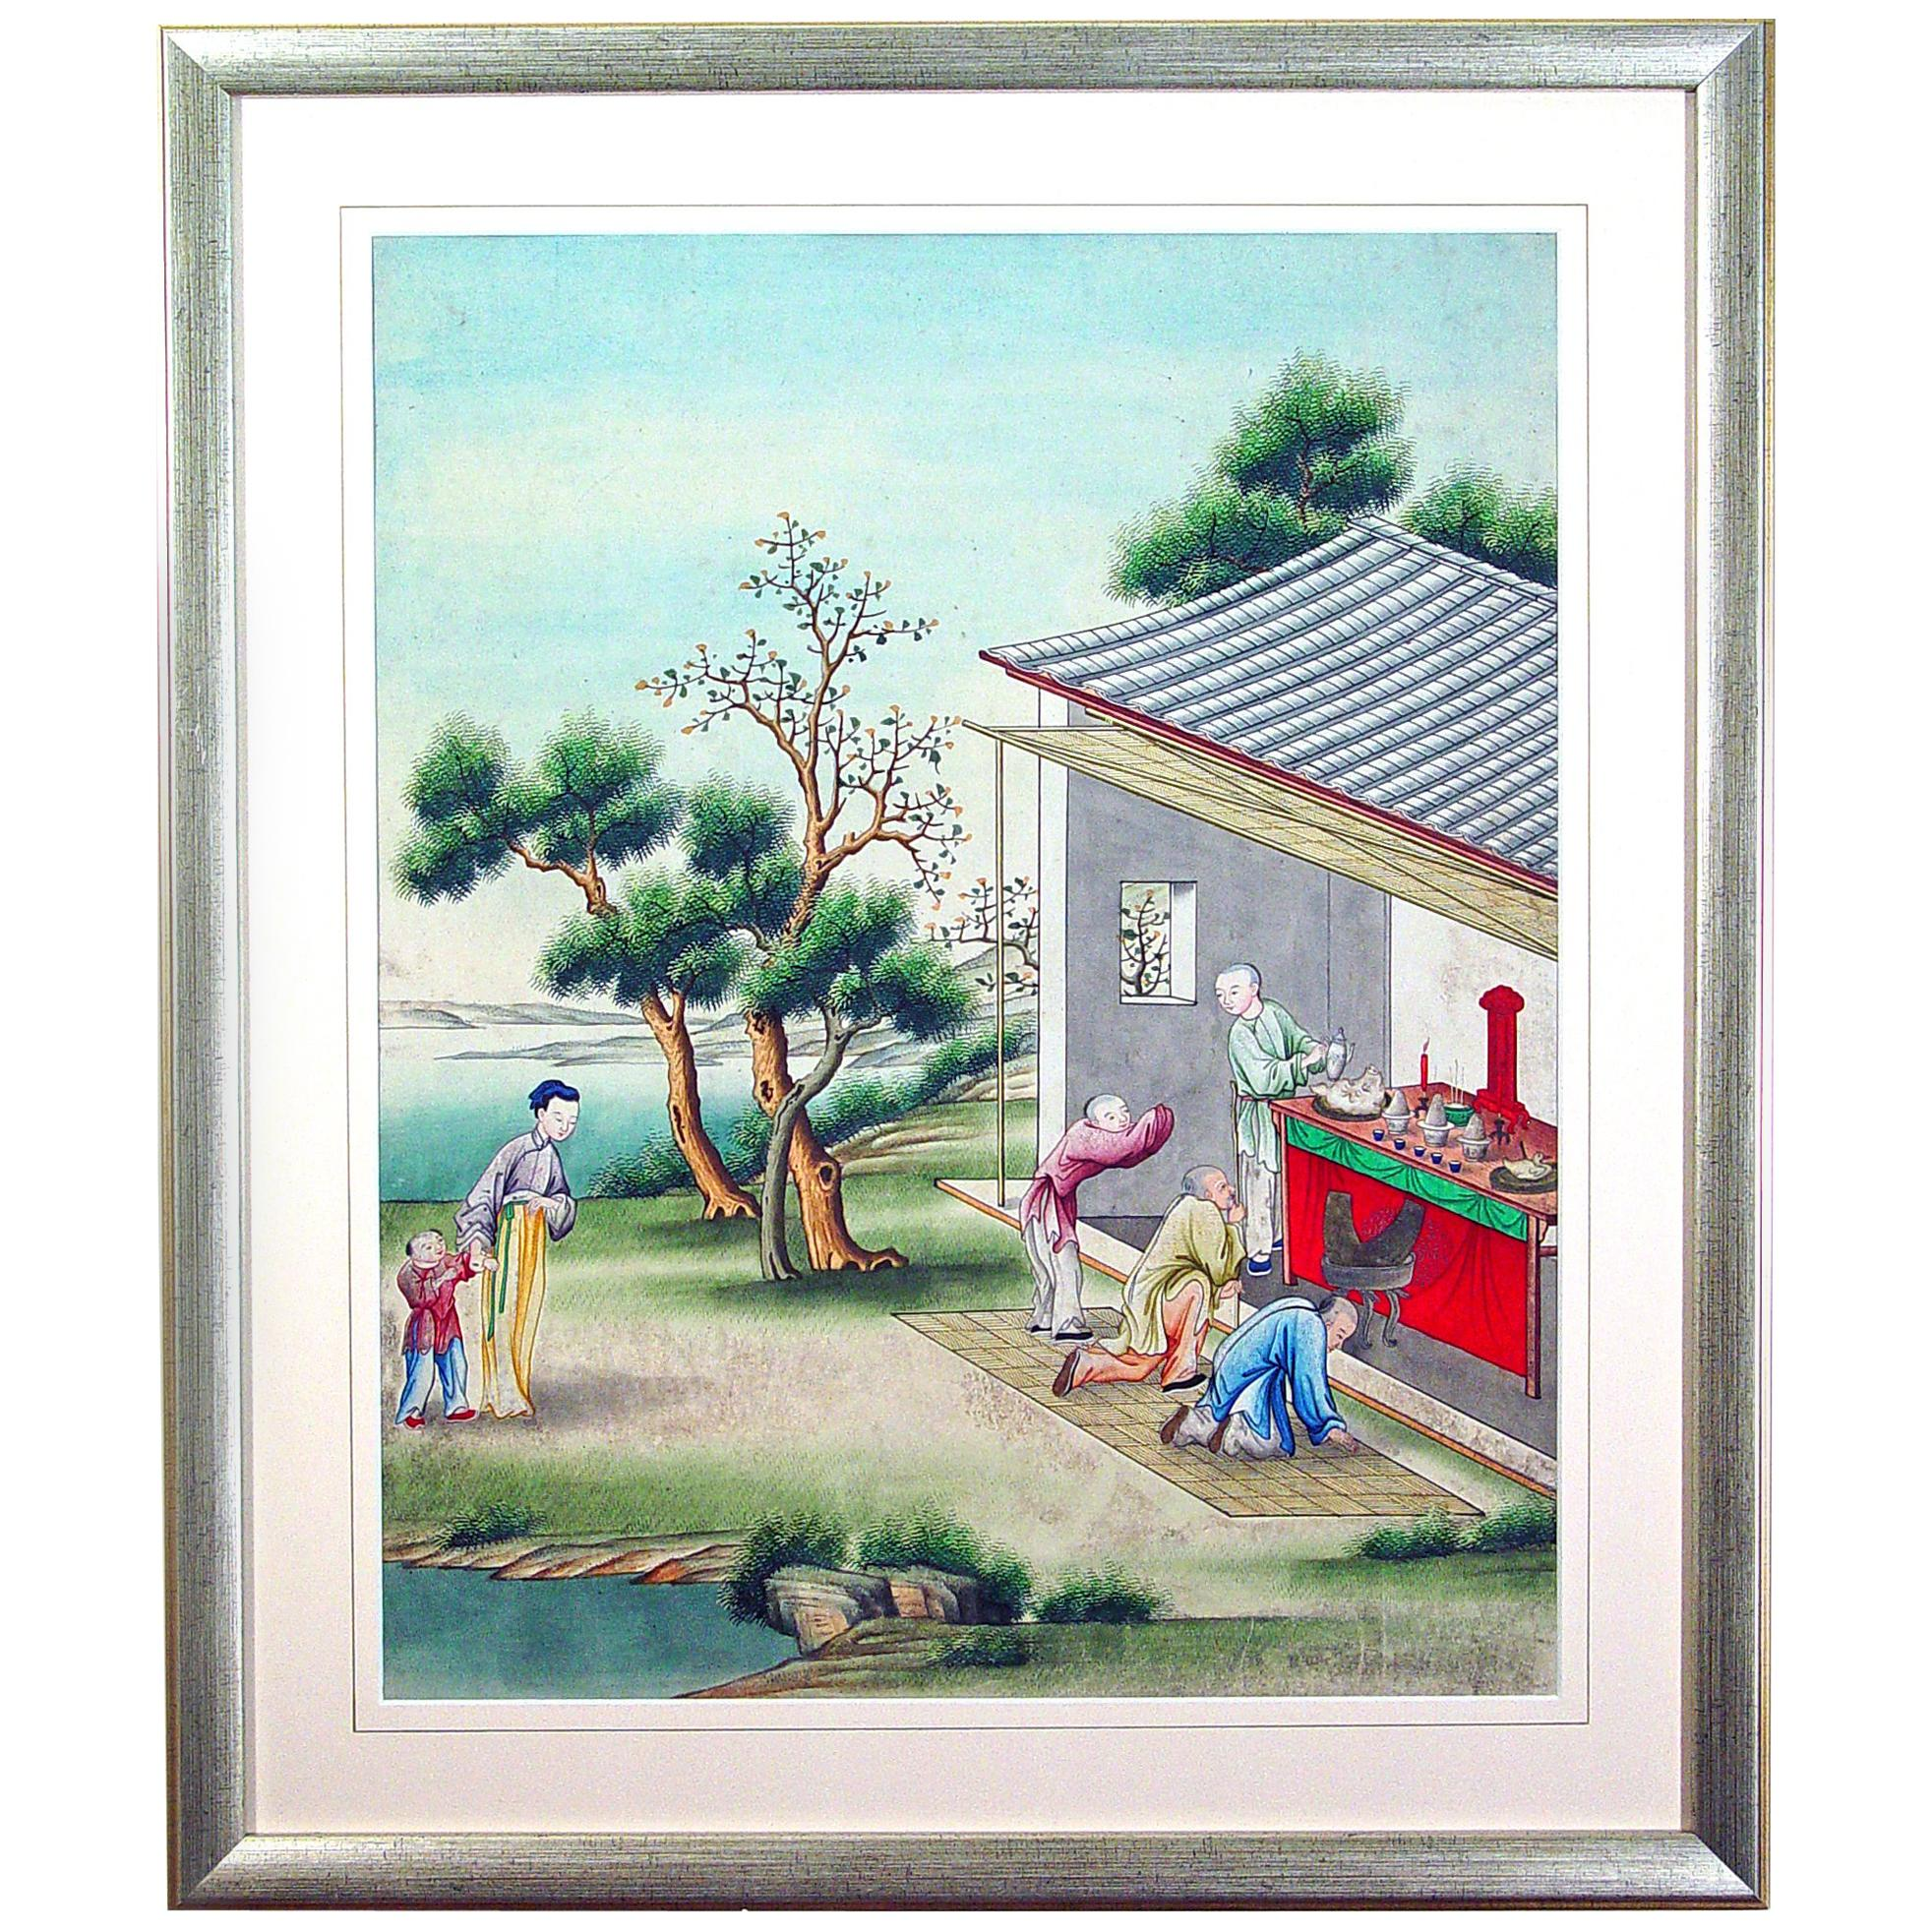 Chinese Gouache and Watercolor Painting, circa 1850-1880